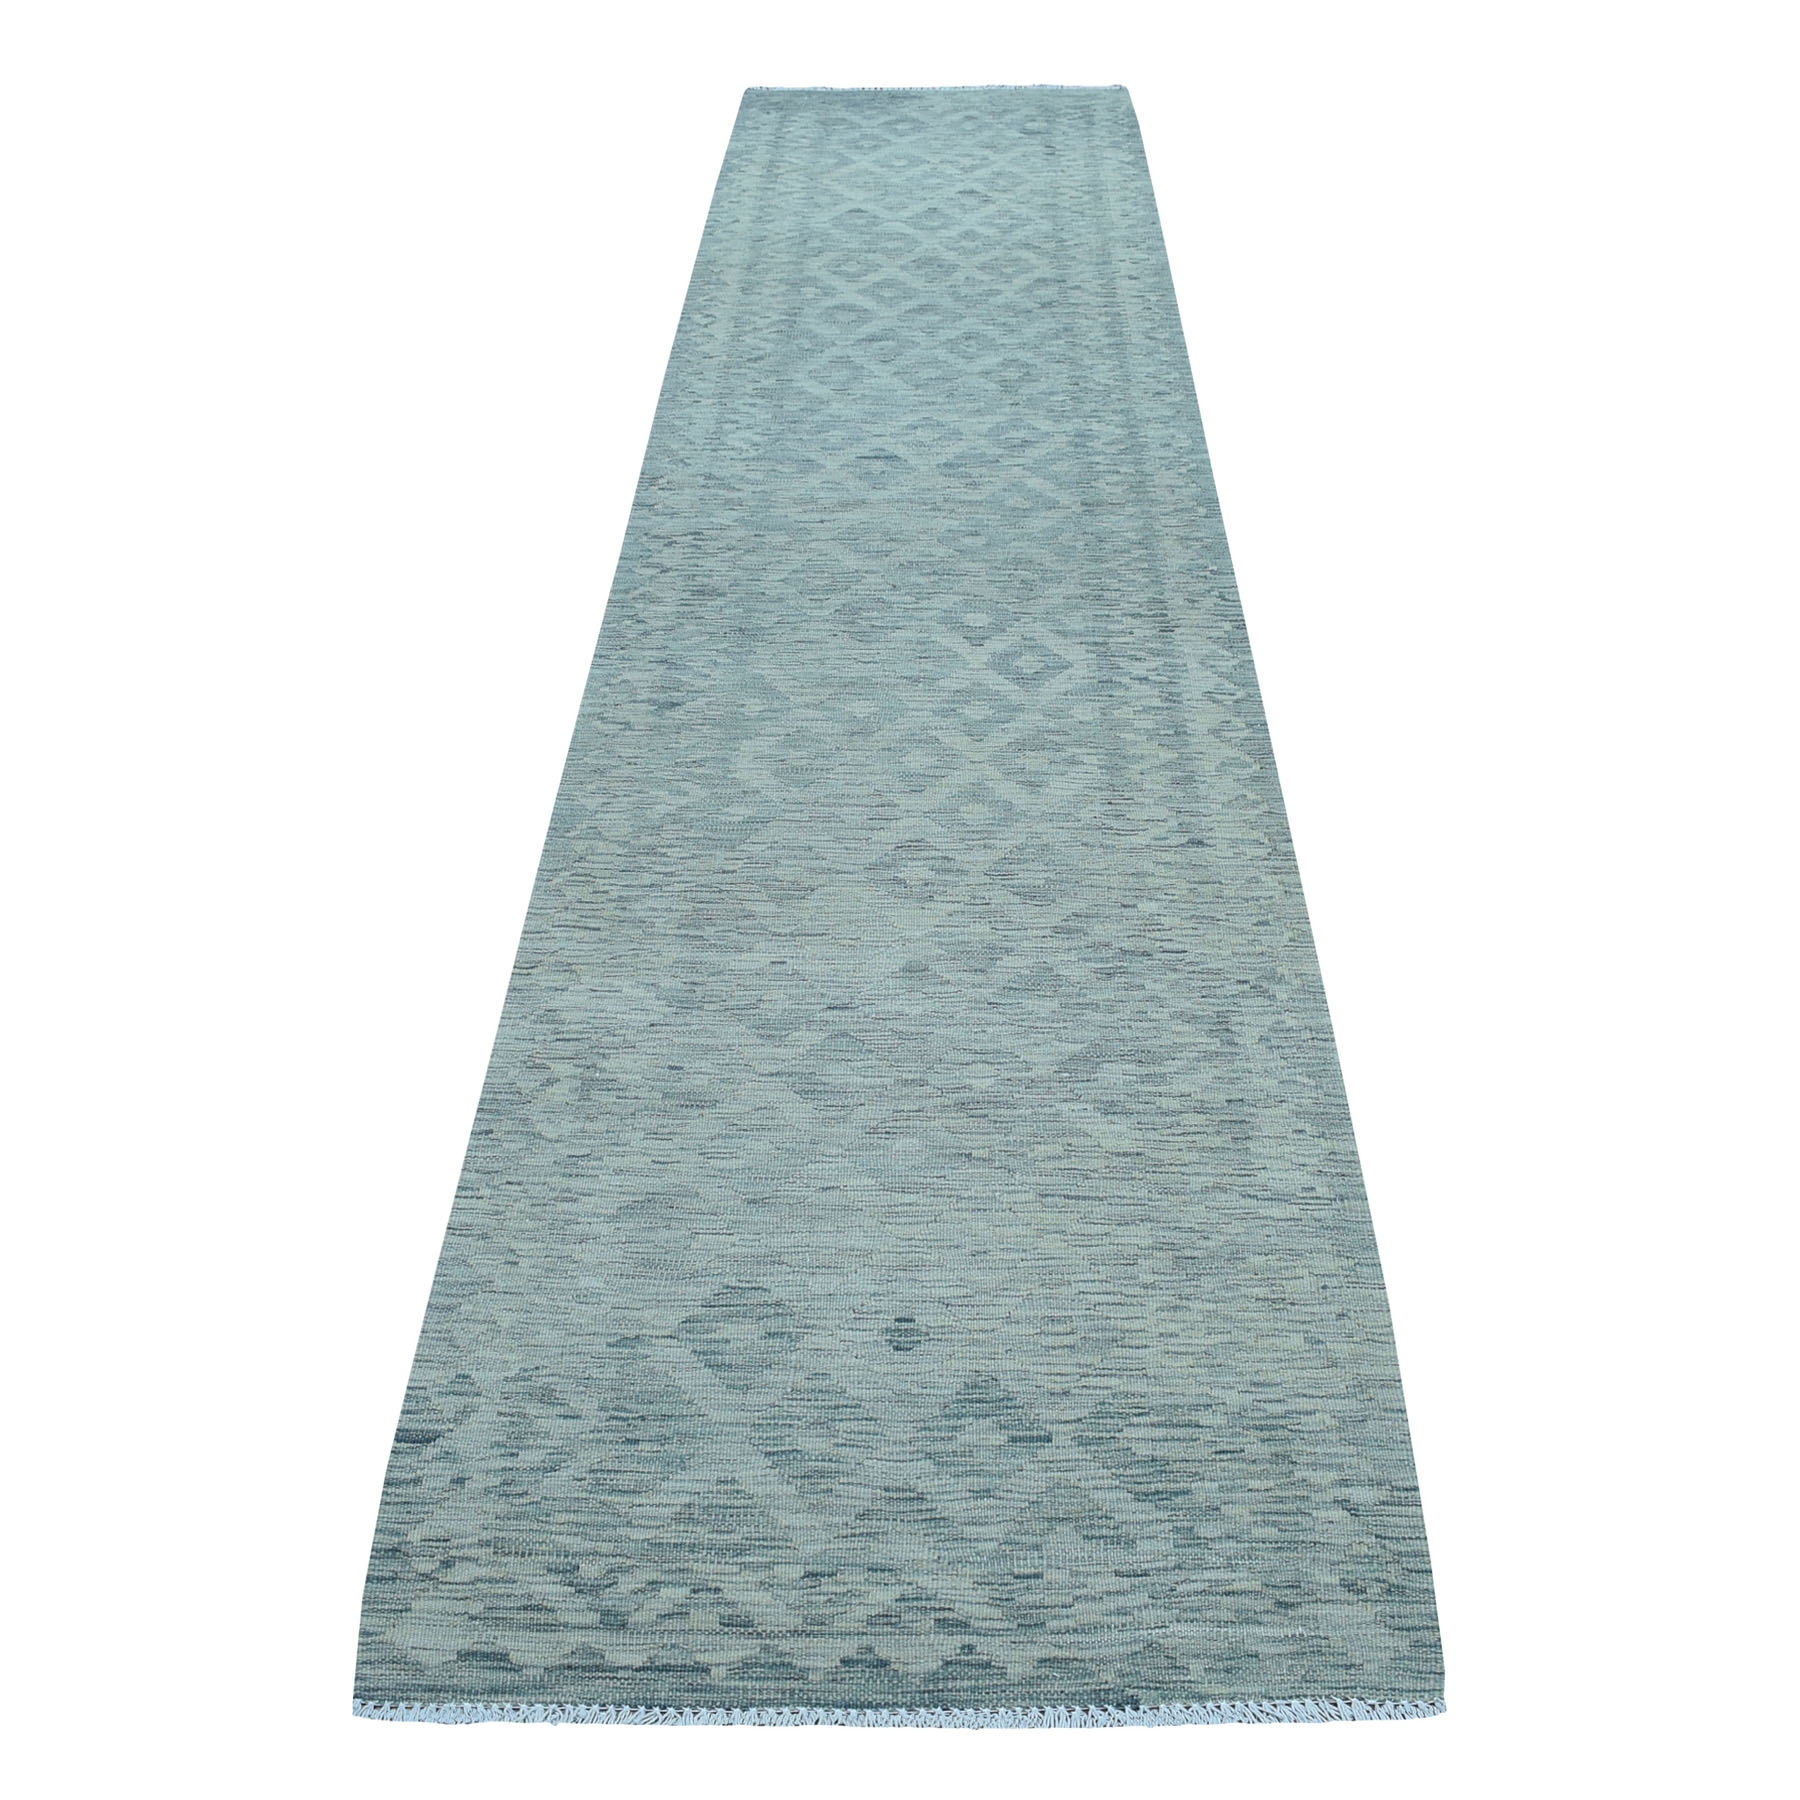 """2'8""""X12'8"""" Gray Shades Flat Weave Kilim Pure Wool Hand Woven Runner Oriental Rug moaec8a6"""